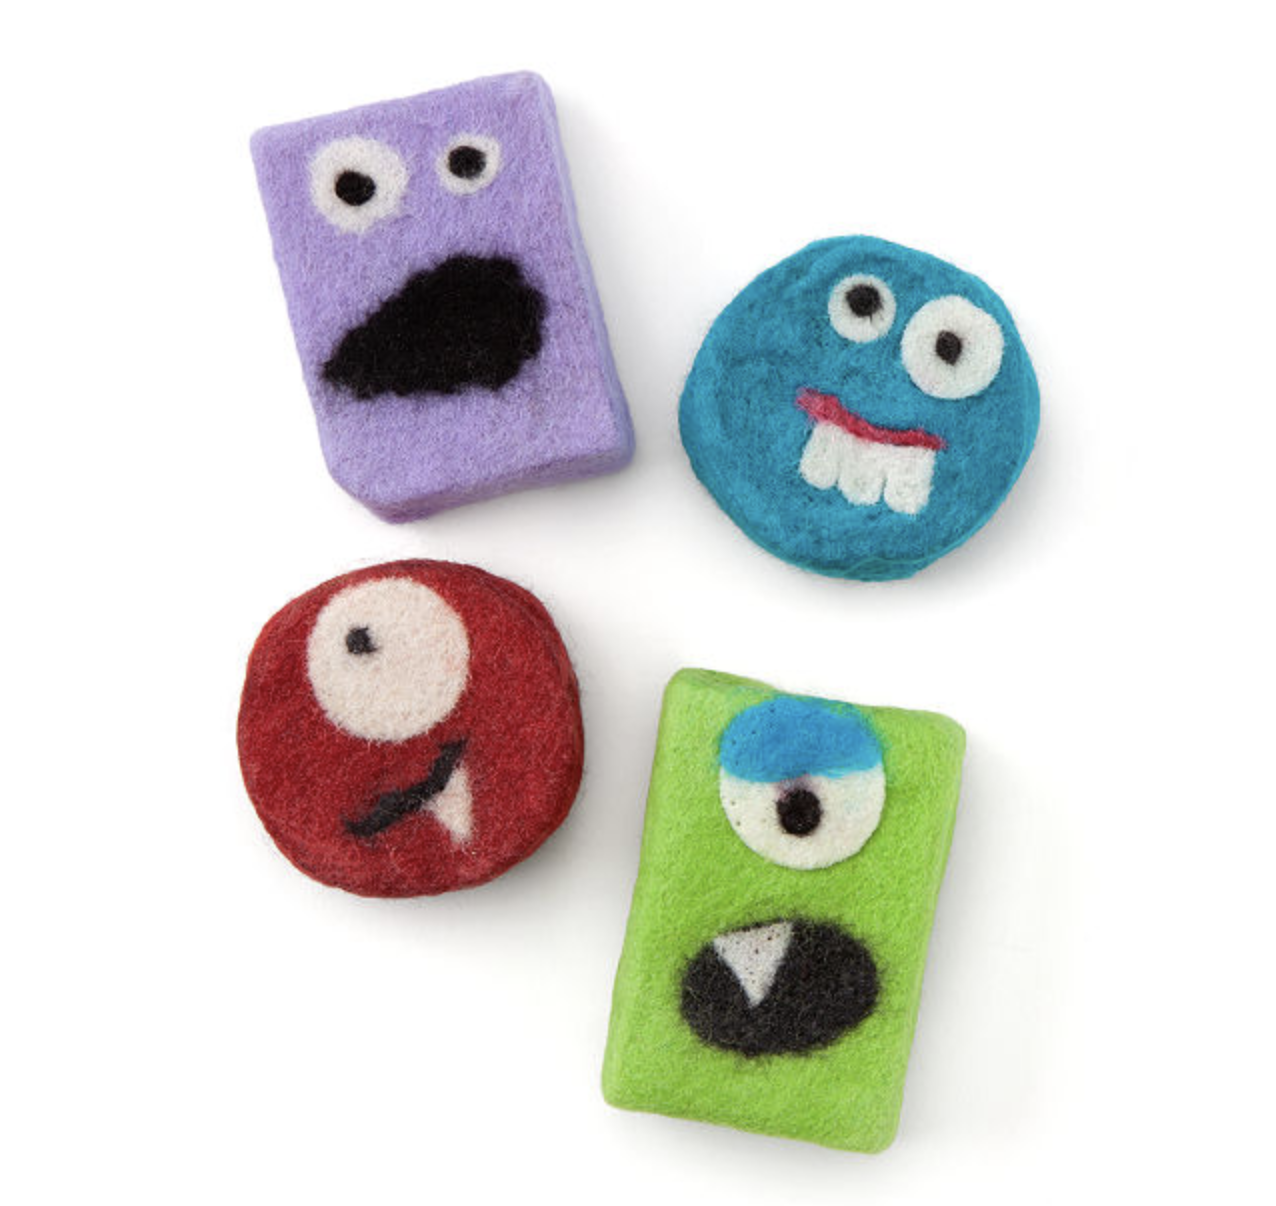 Four soaps with monster faces